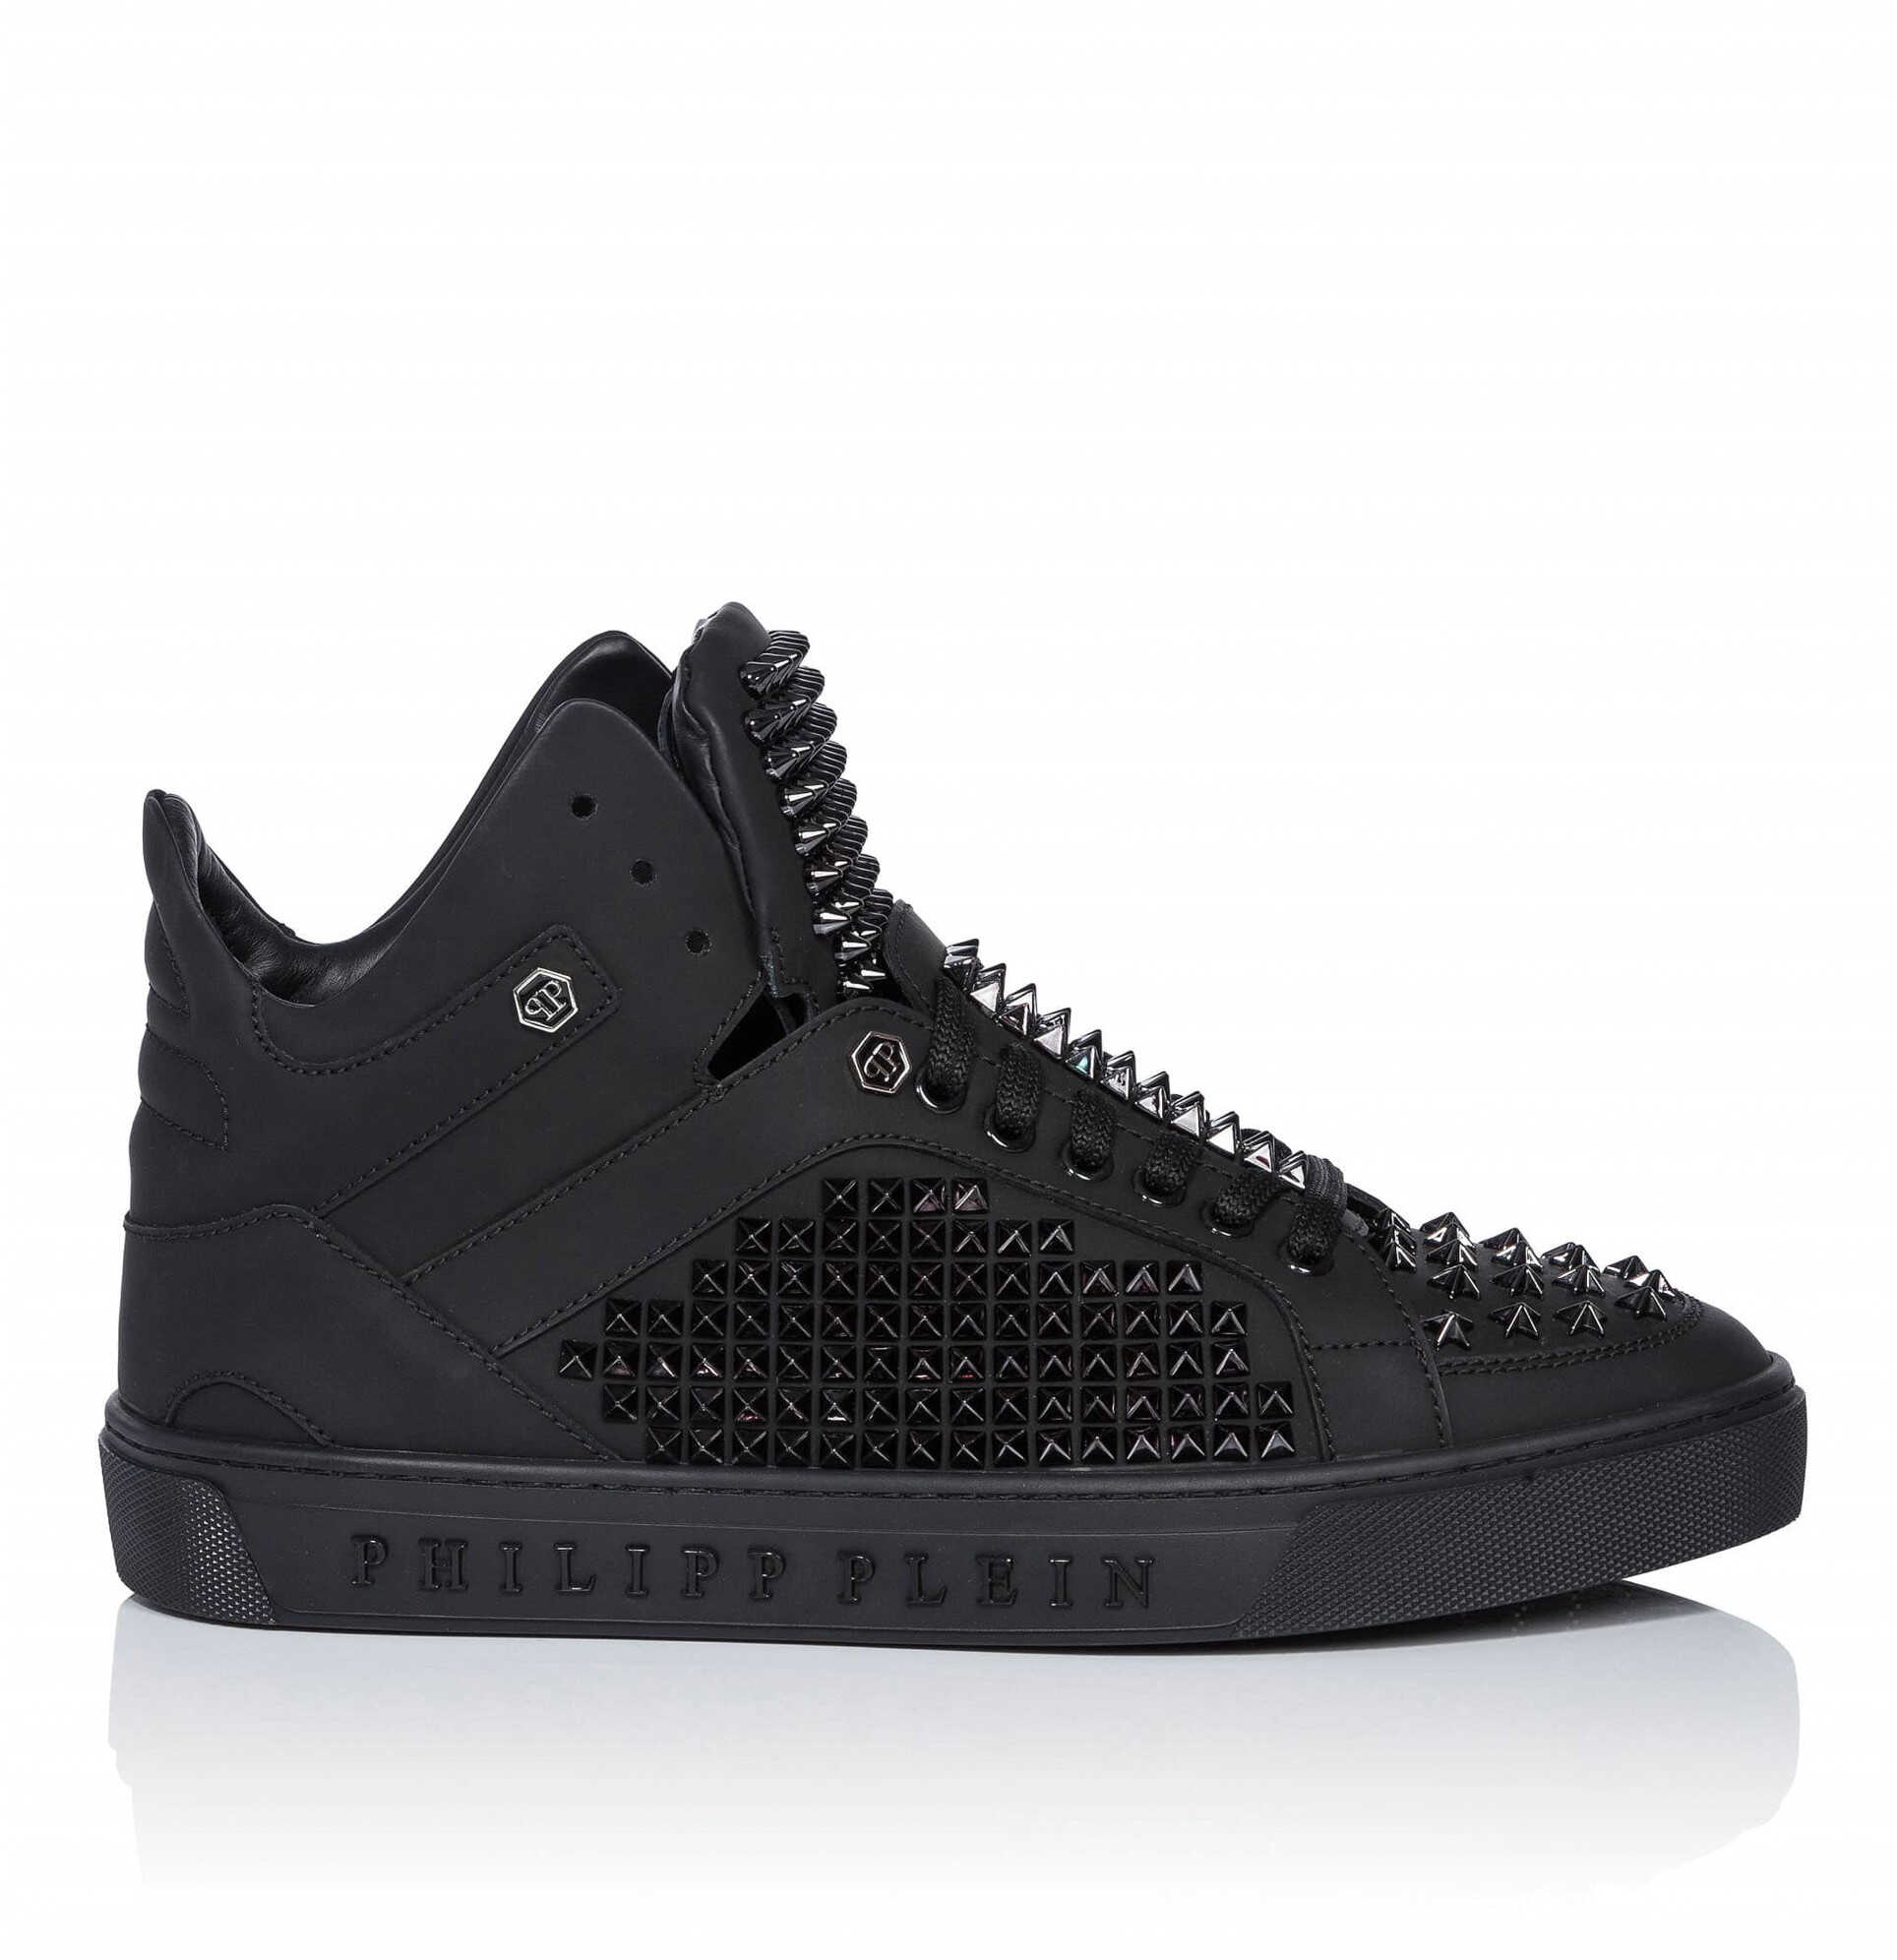 Philipp Plein Sneakers* BLACK